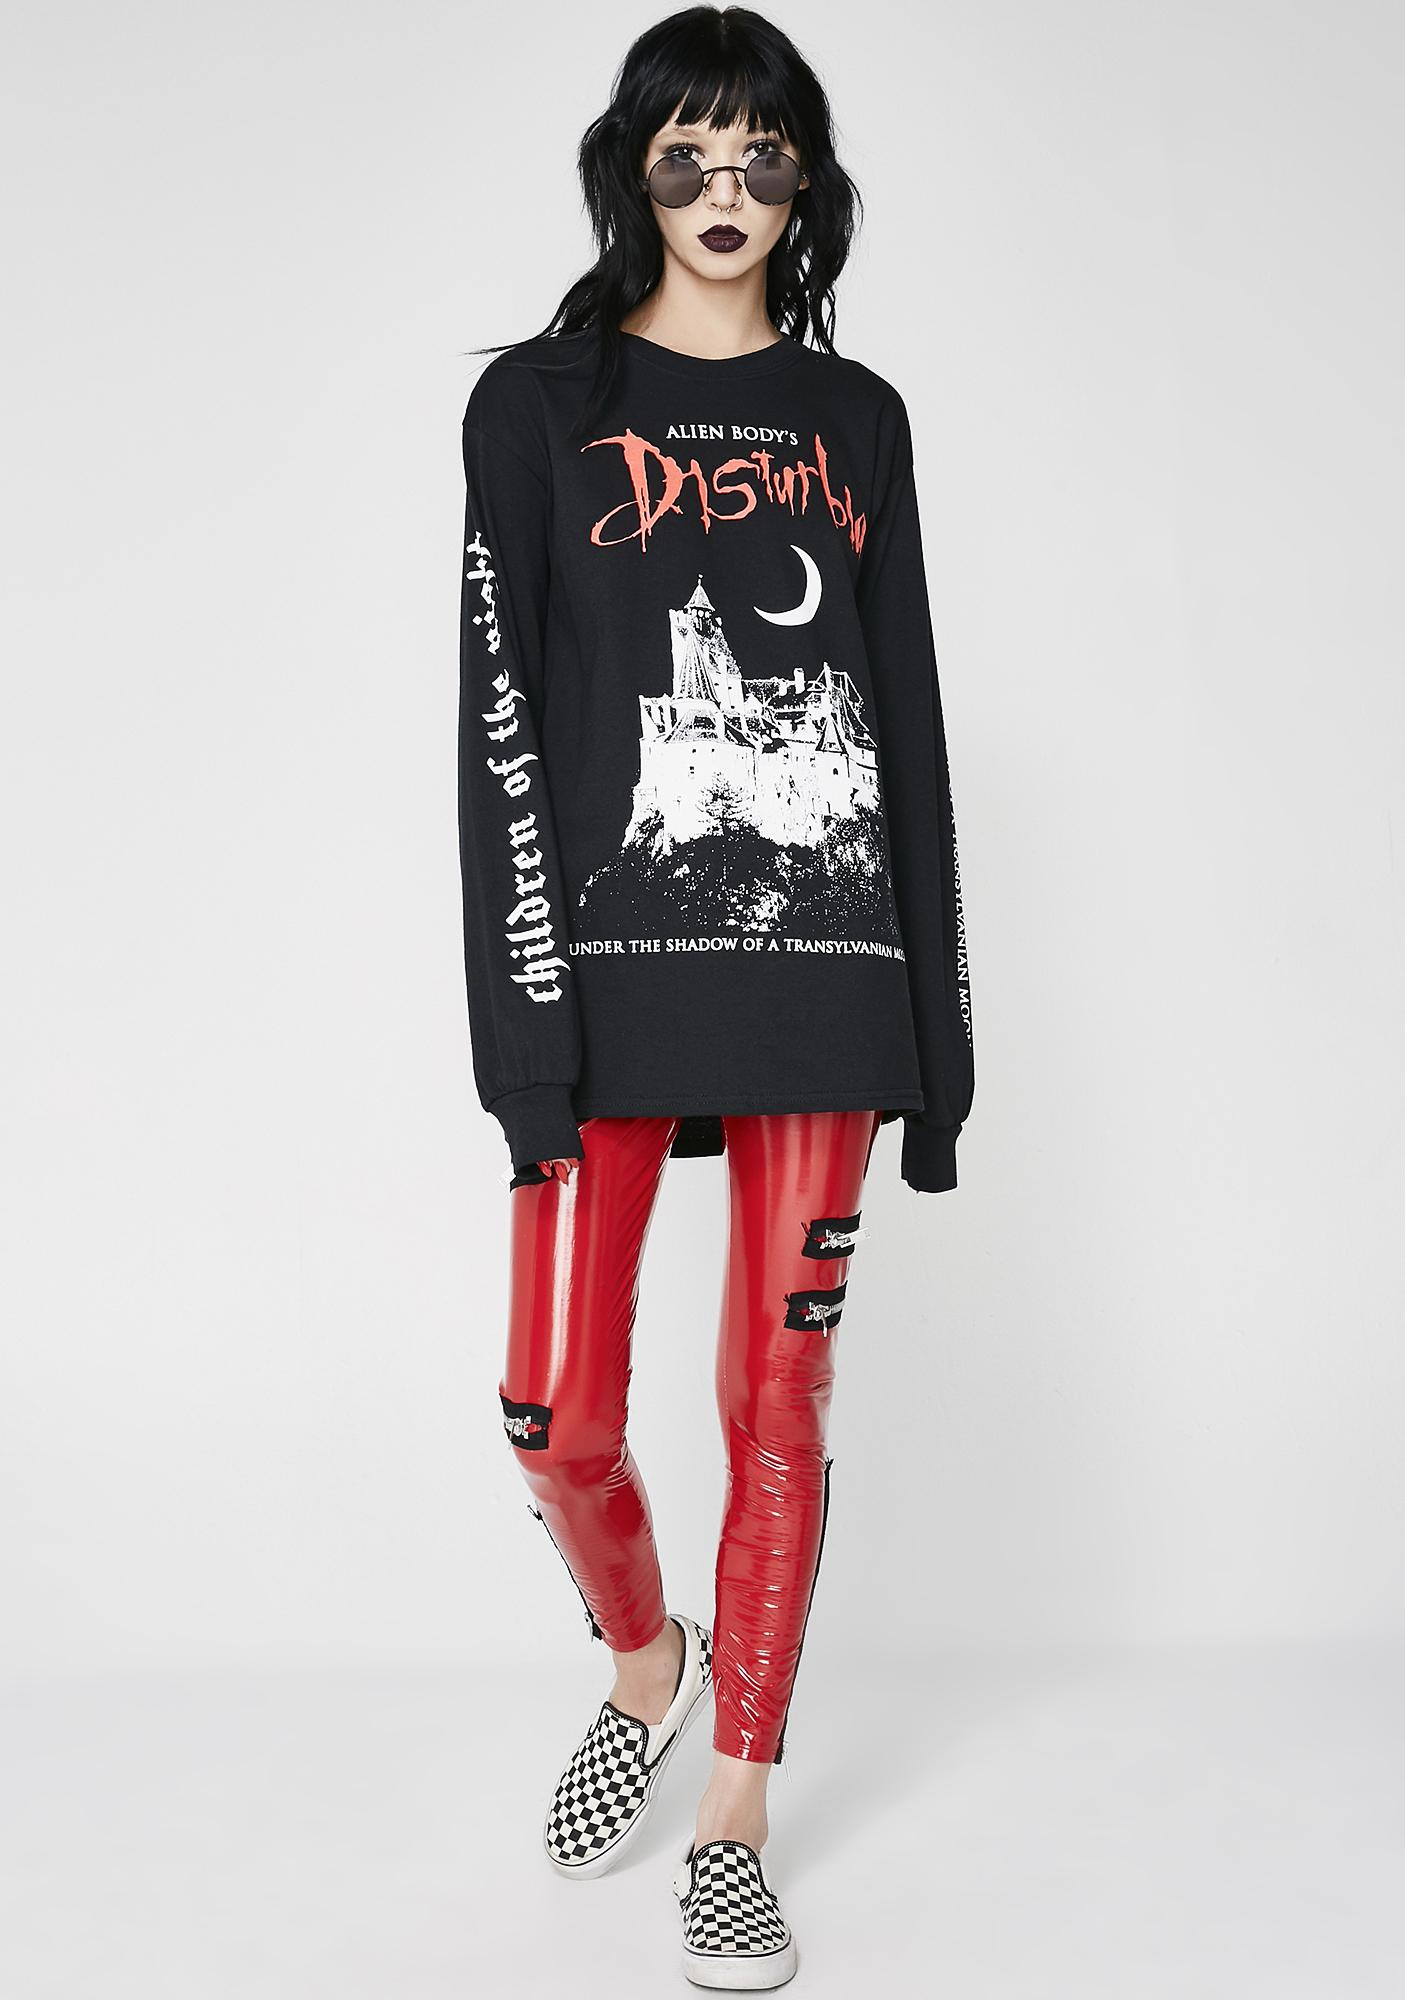 Disturbia Transylvaniac Long Sleeve Tee